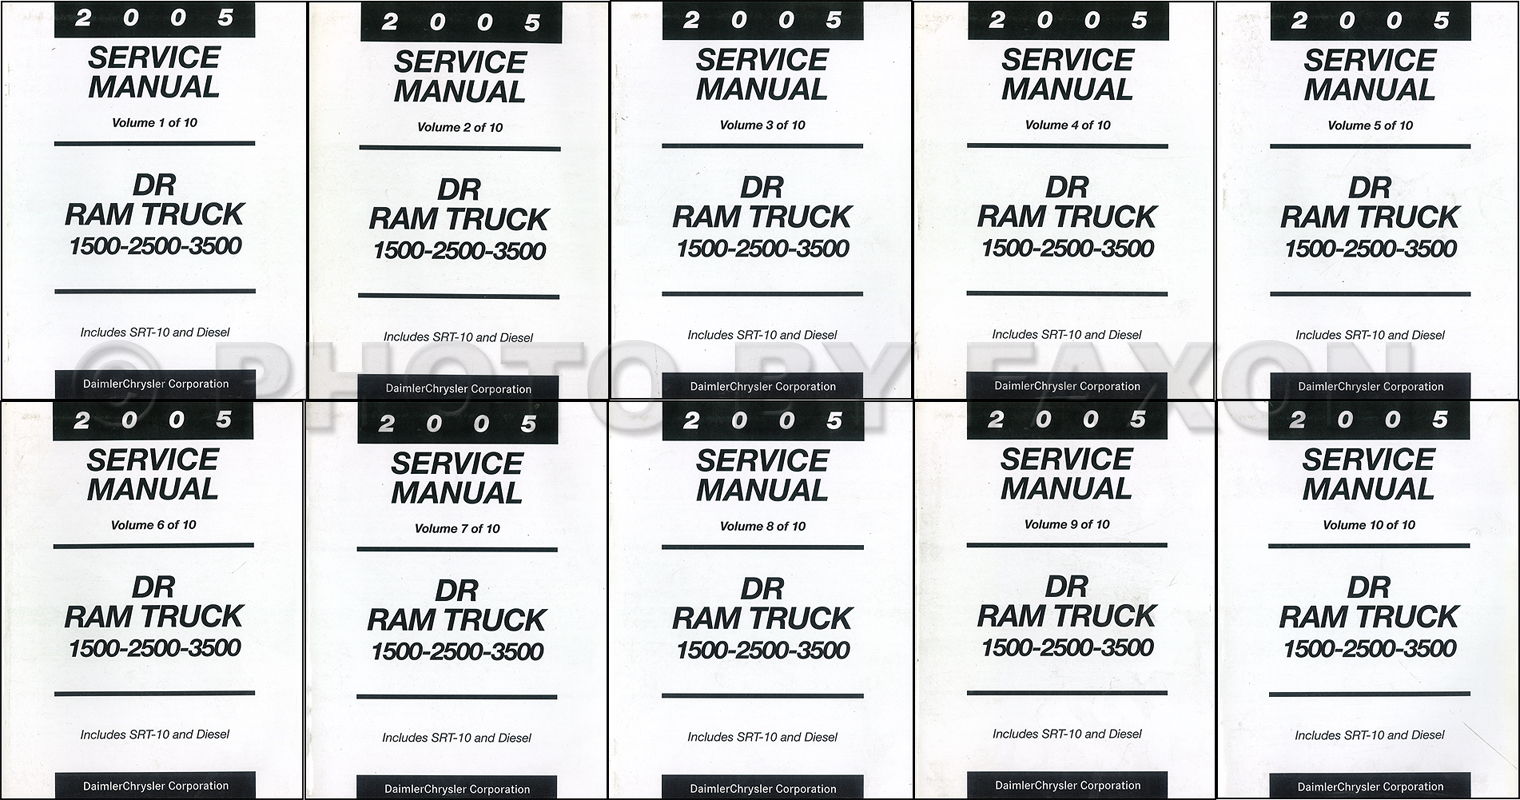 2005 Dodge Ram Truck Wiring Diagram Manual Original 4 Prong Trailer 2003 1500 Repair Shop 10 Vol Set Factory Reprint 2500 3500